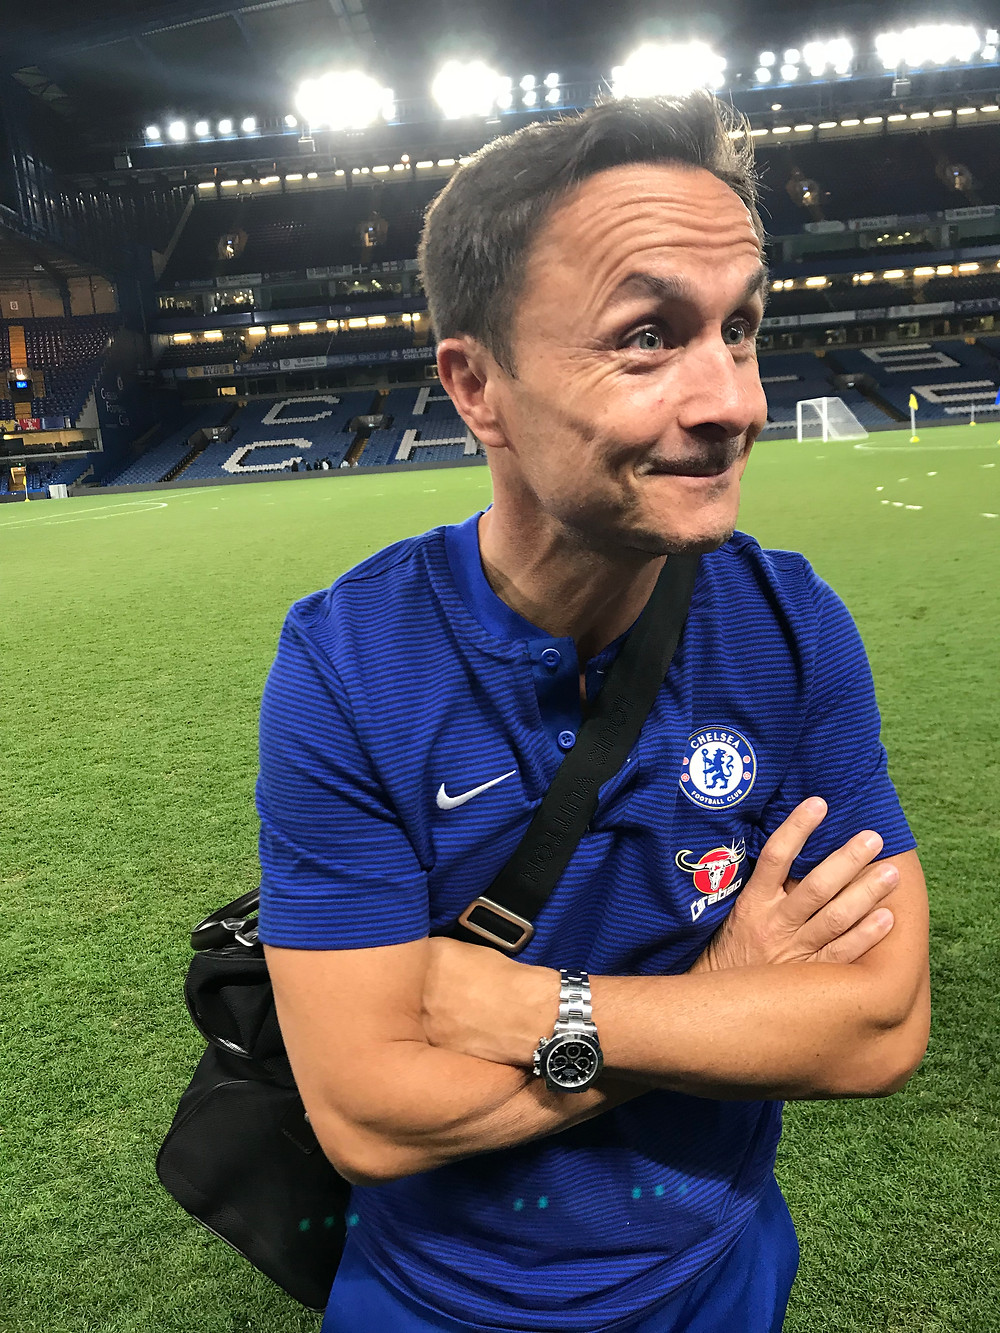 Dennis Wise Photo by Paul Lagan